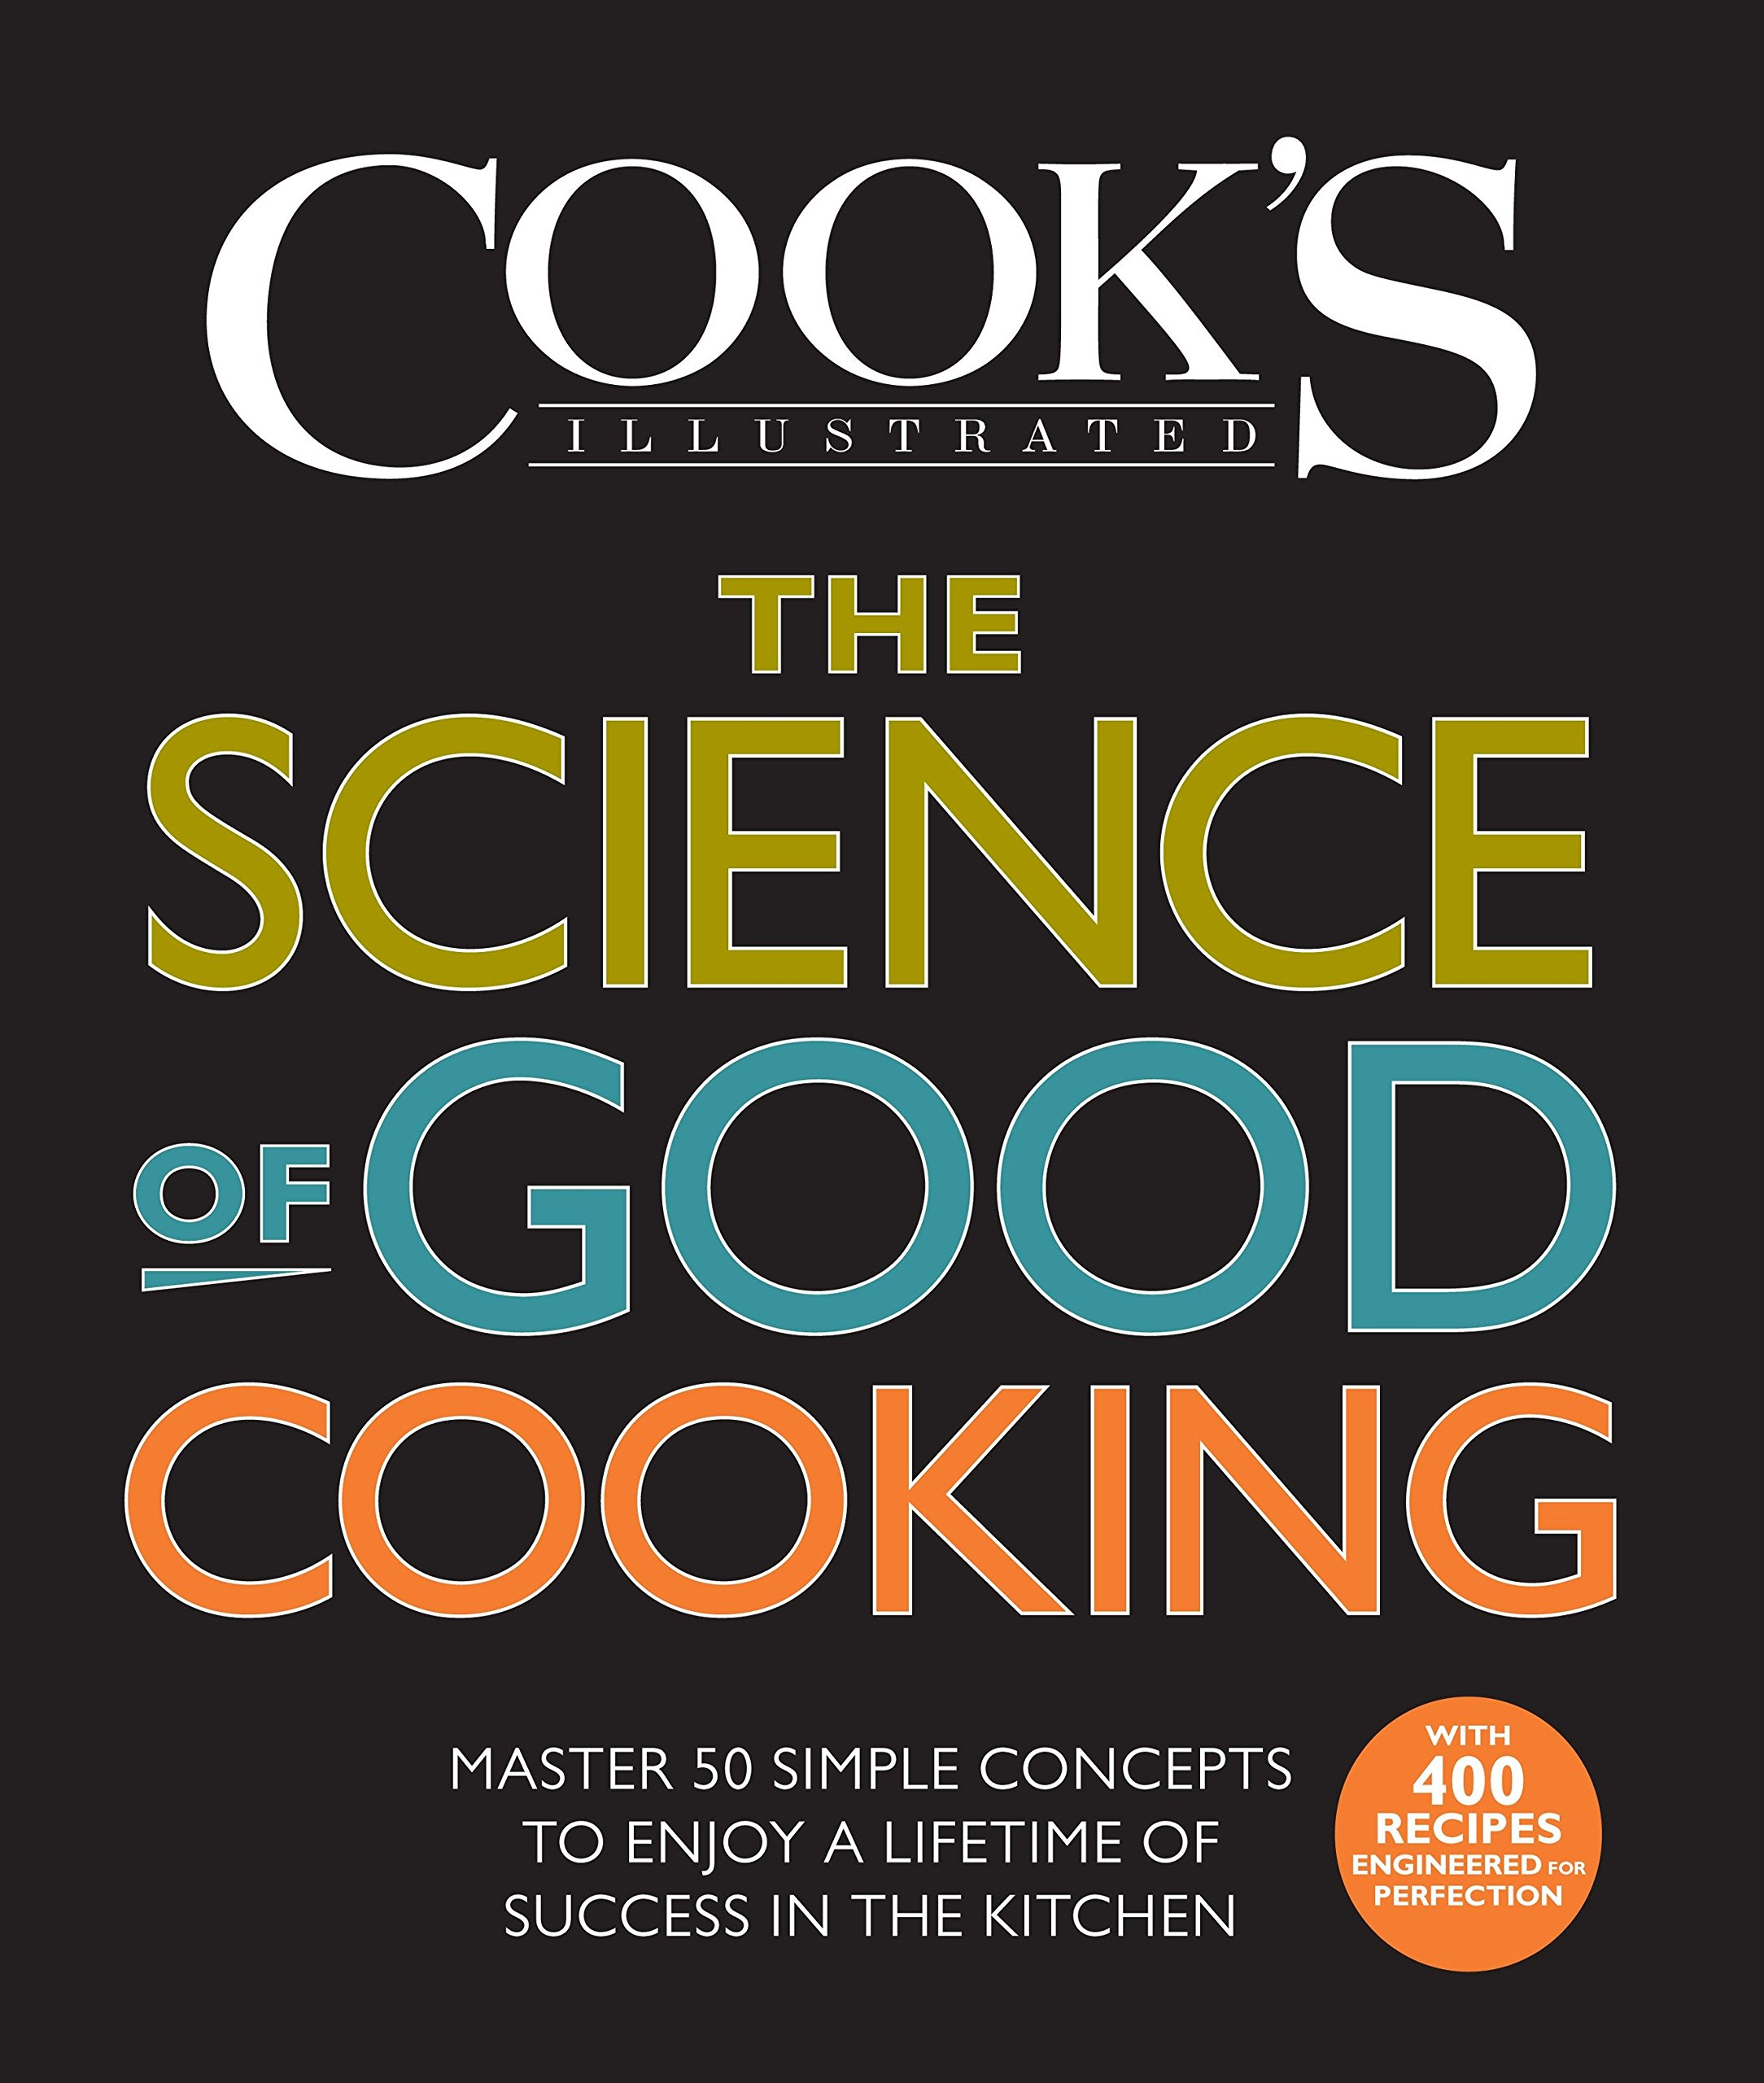 The Science Of Good Cooking  Master 50 Simple Concepts To Enjoy A Lifetime Of Success In The Kitchen  Cook's Illustrated Cookbooks